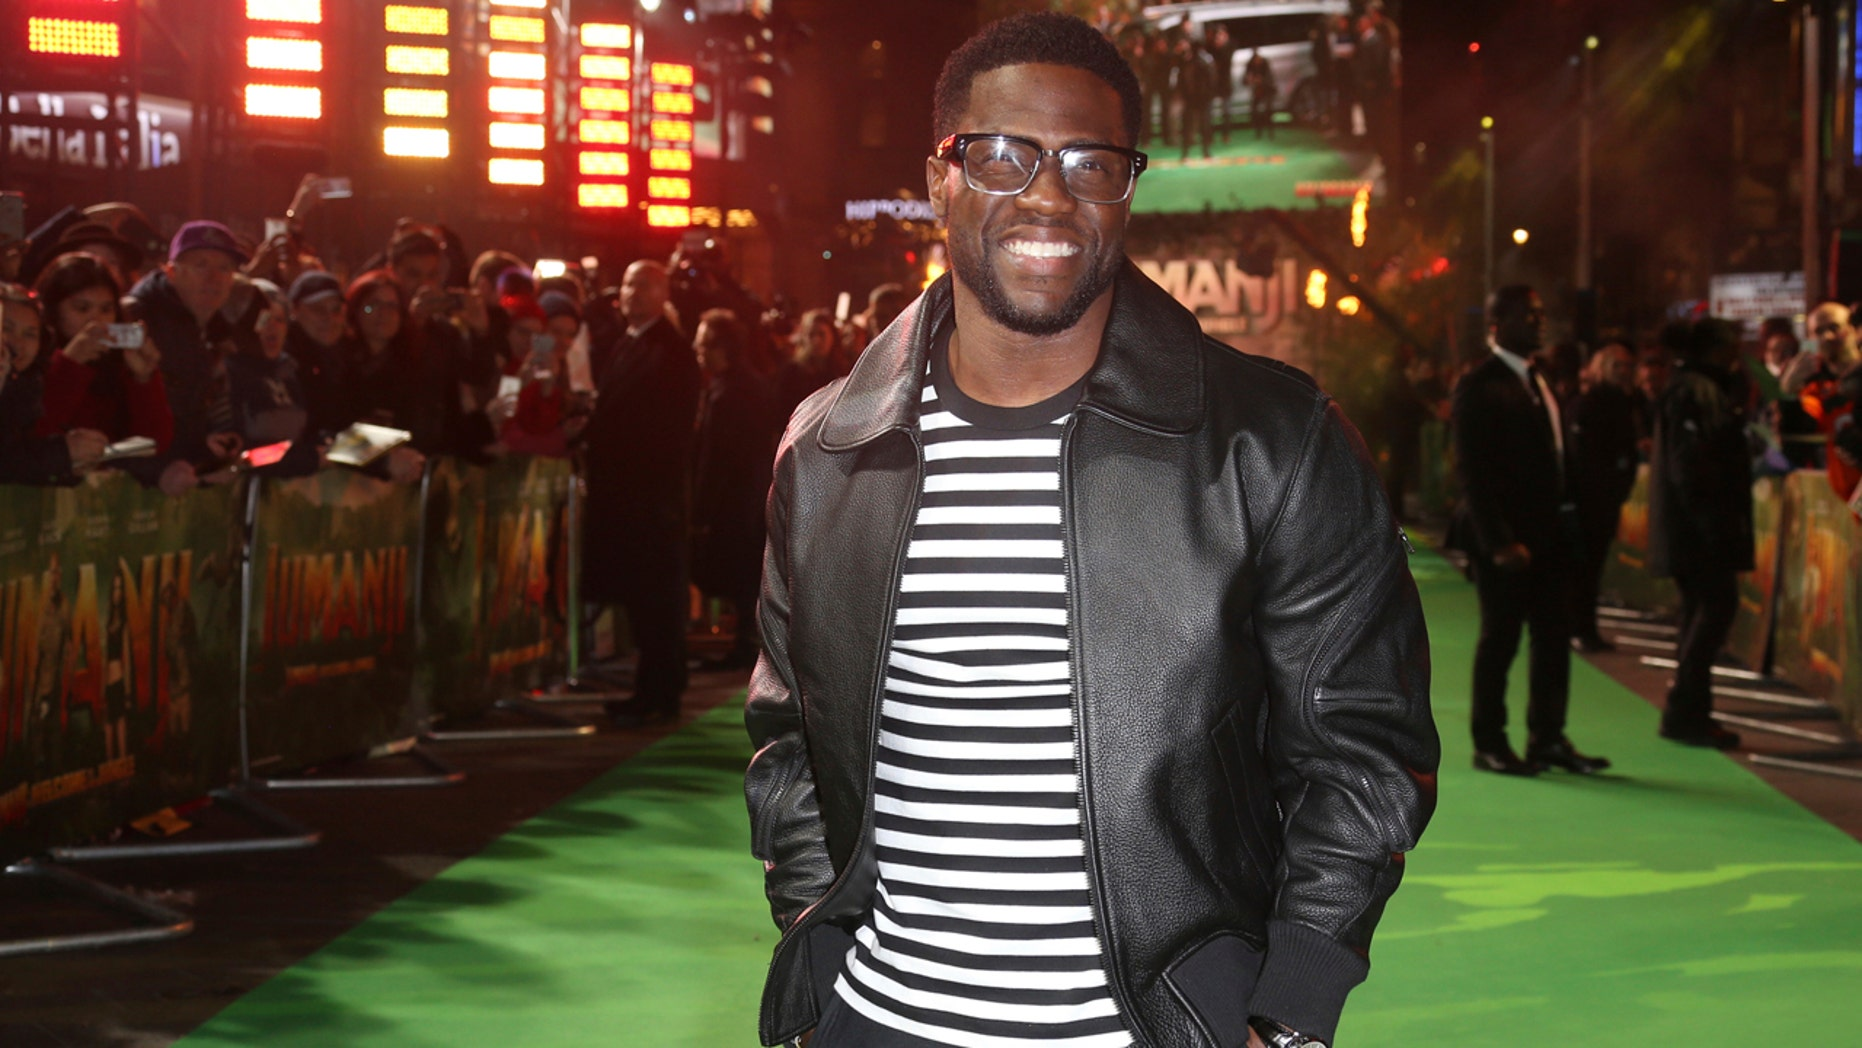 7 2017 file photo kevin hart poses for photographers upon